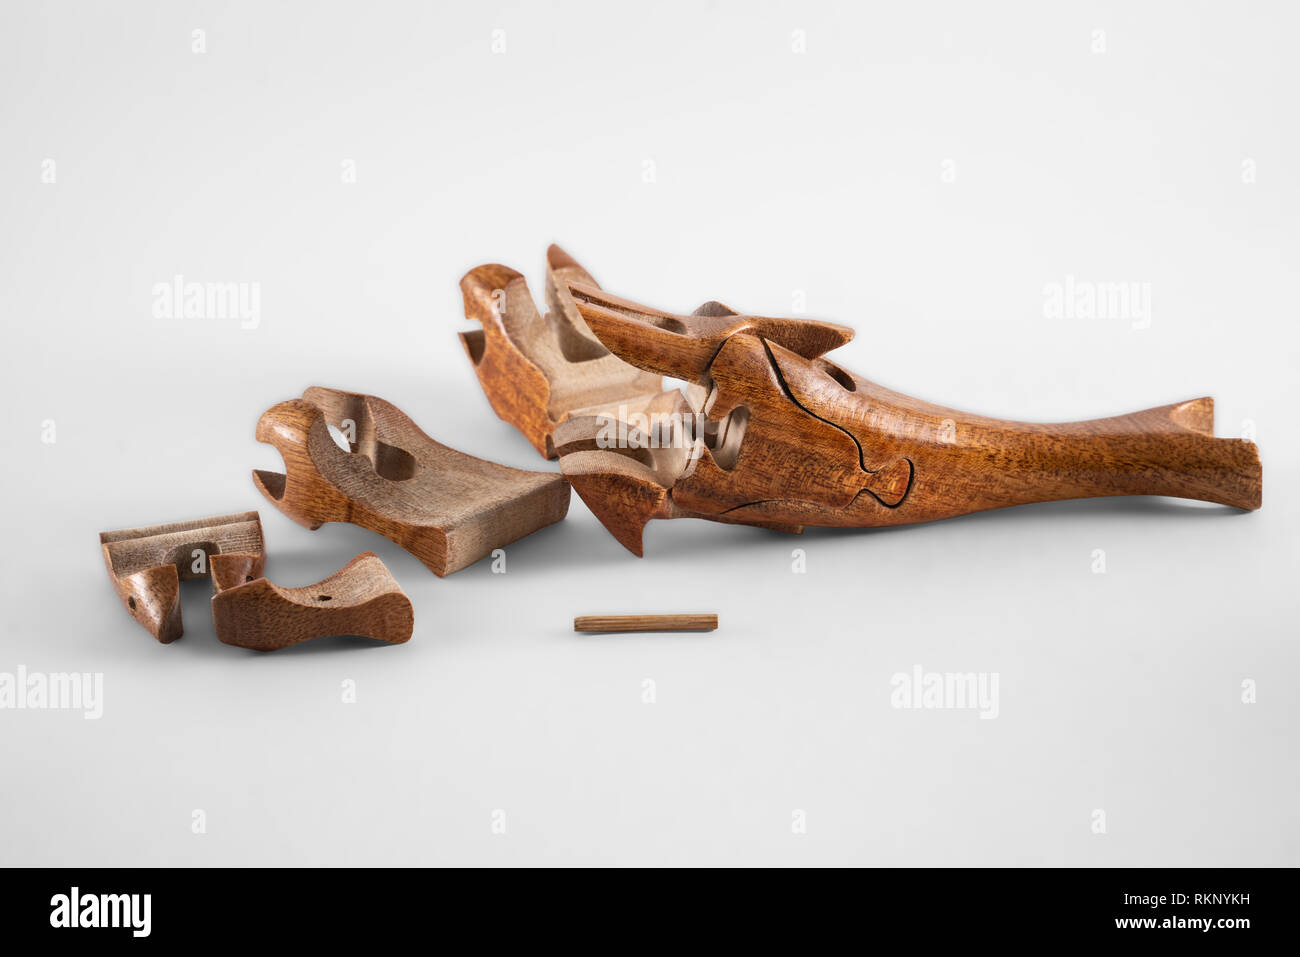 wooden creative dolphin puzzle toy on white - Stock Image